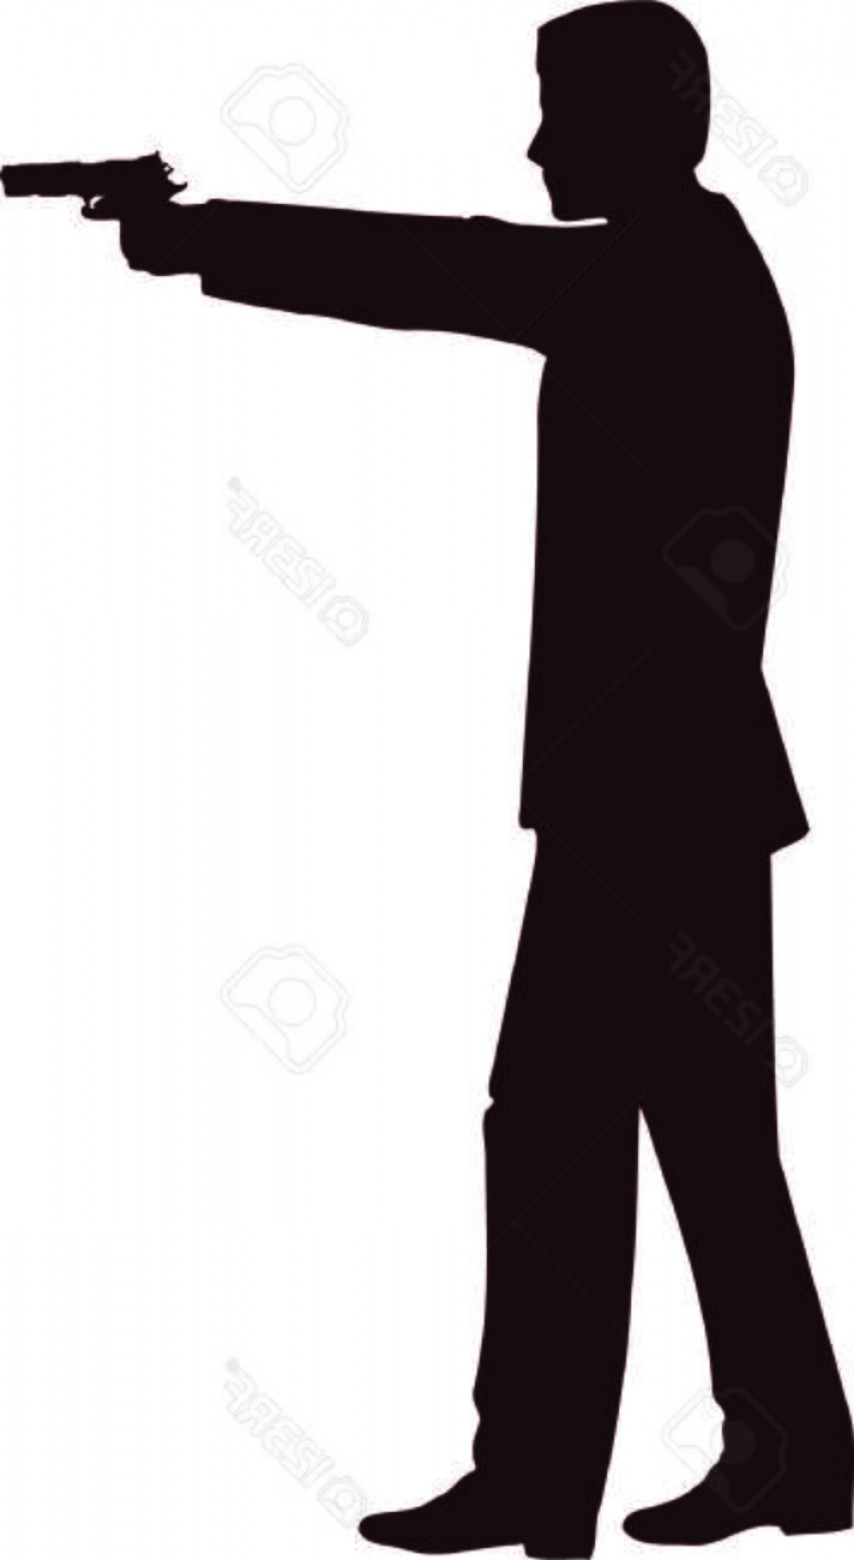 James Bond Silhouette Vector: Photostock Vector Man With Gun Silhouette